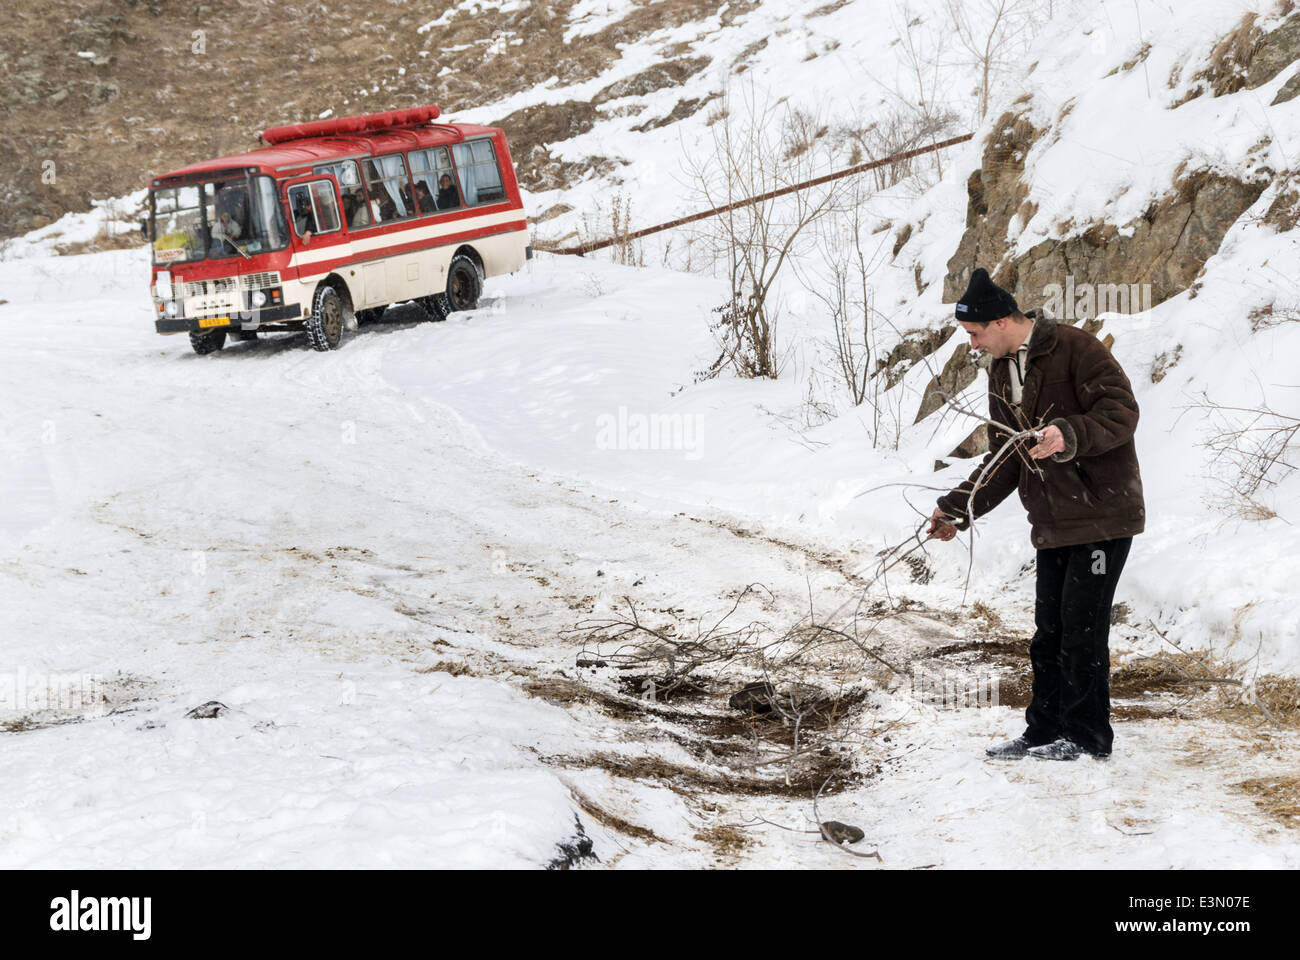 Man setting branches on the road to help a bus passing over a slippery patch on the road, Armenia - Stock Image